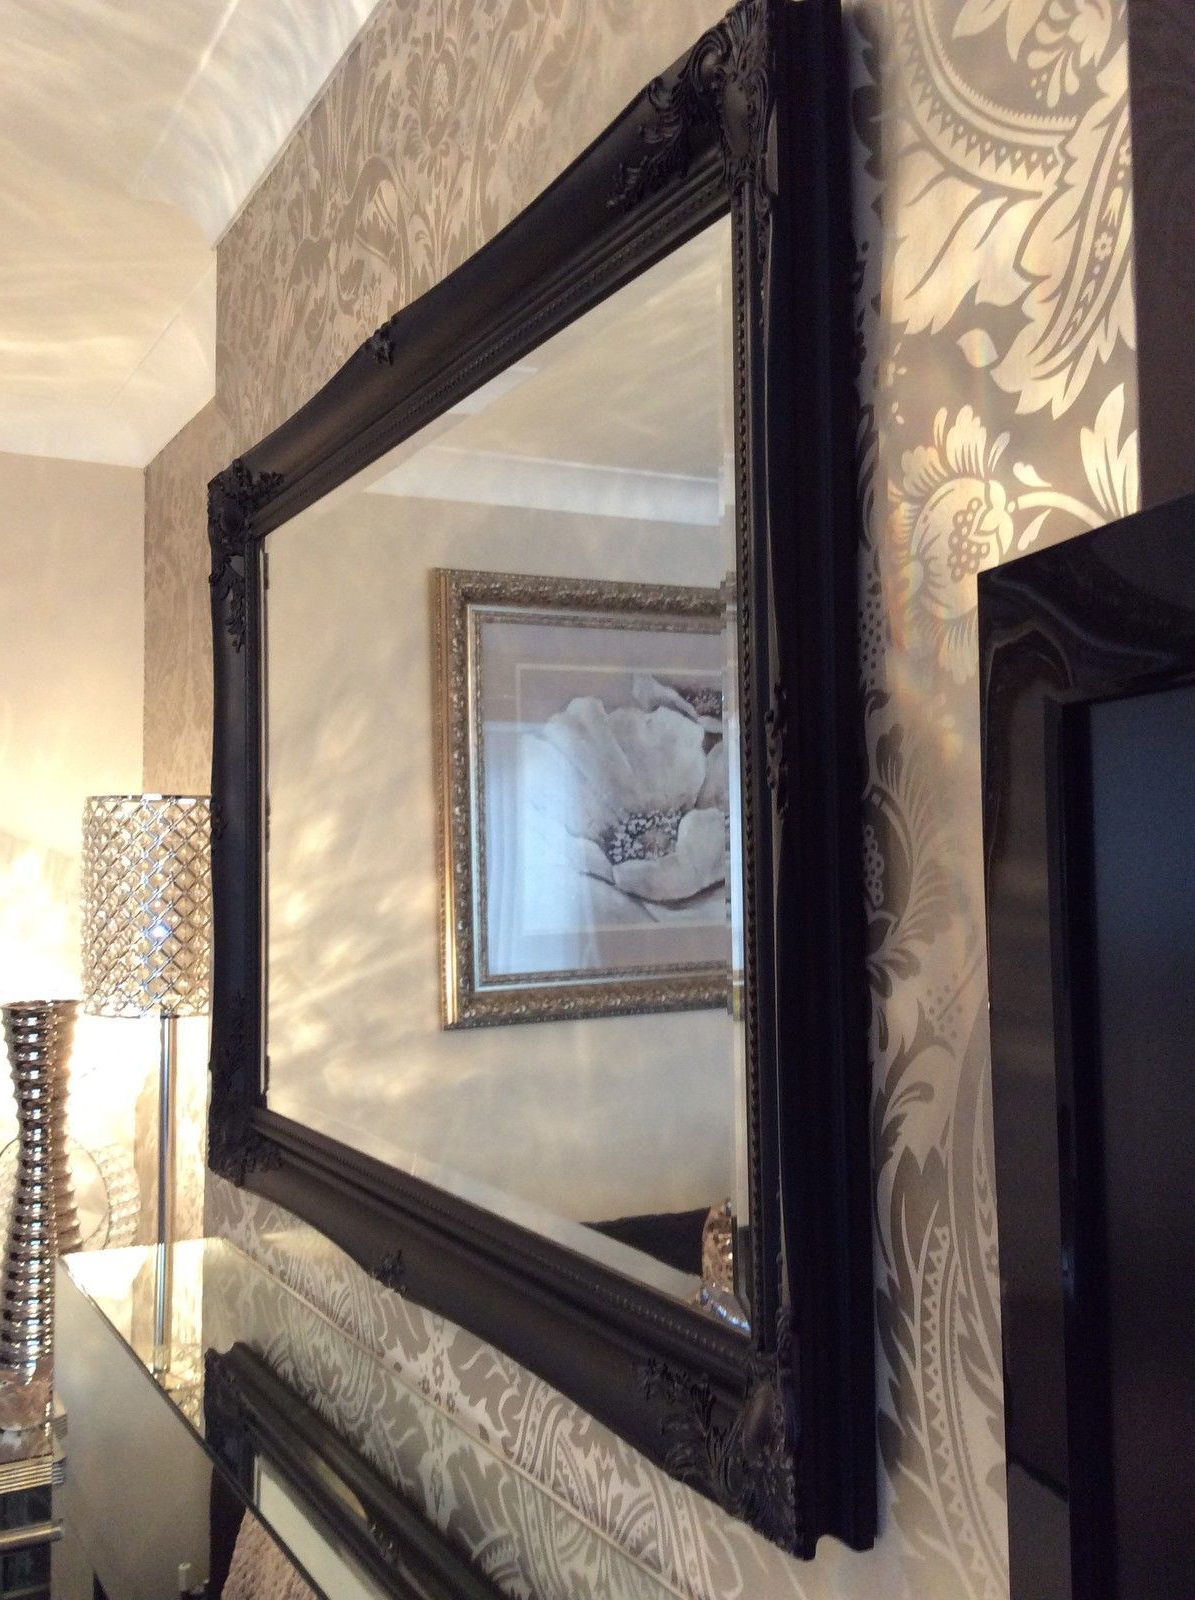 Newest Large Framed Wall Mirrors With Regard To Large Black Stunning Decorative Swept Wall Mirror – Bevelled Glass *new* (Gallery 1 of 20)